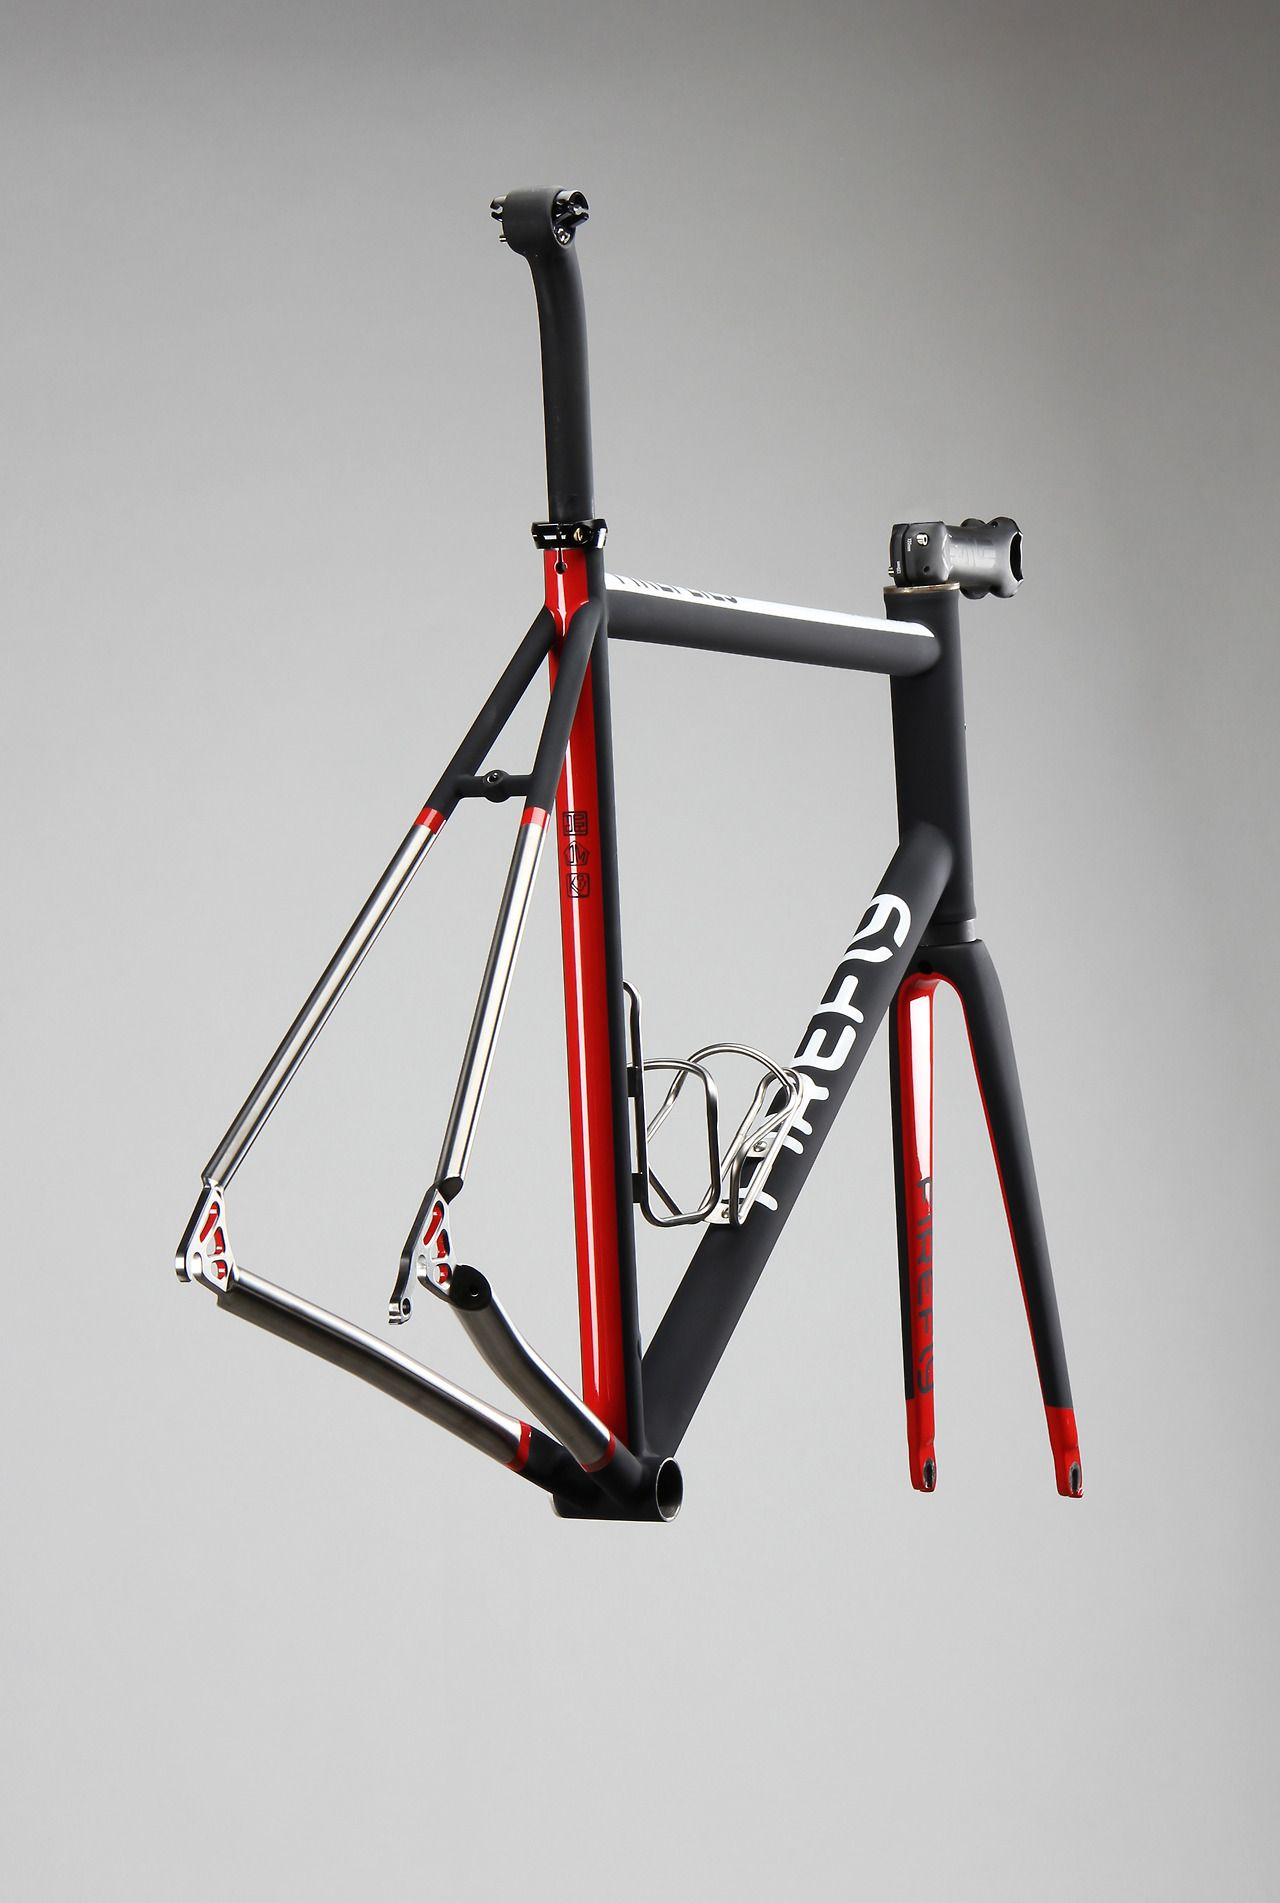 Firefly Bicycles   Bikes   Pinterest   Fireflies, Bicycling and Bike ...